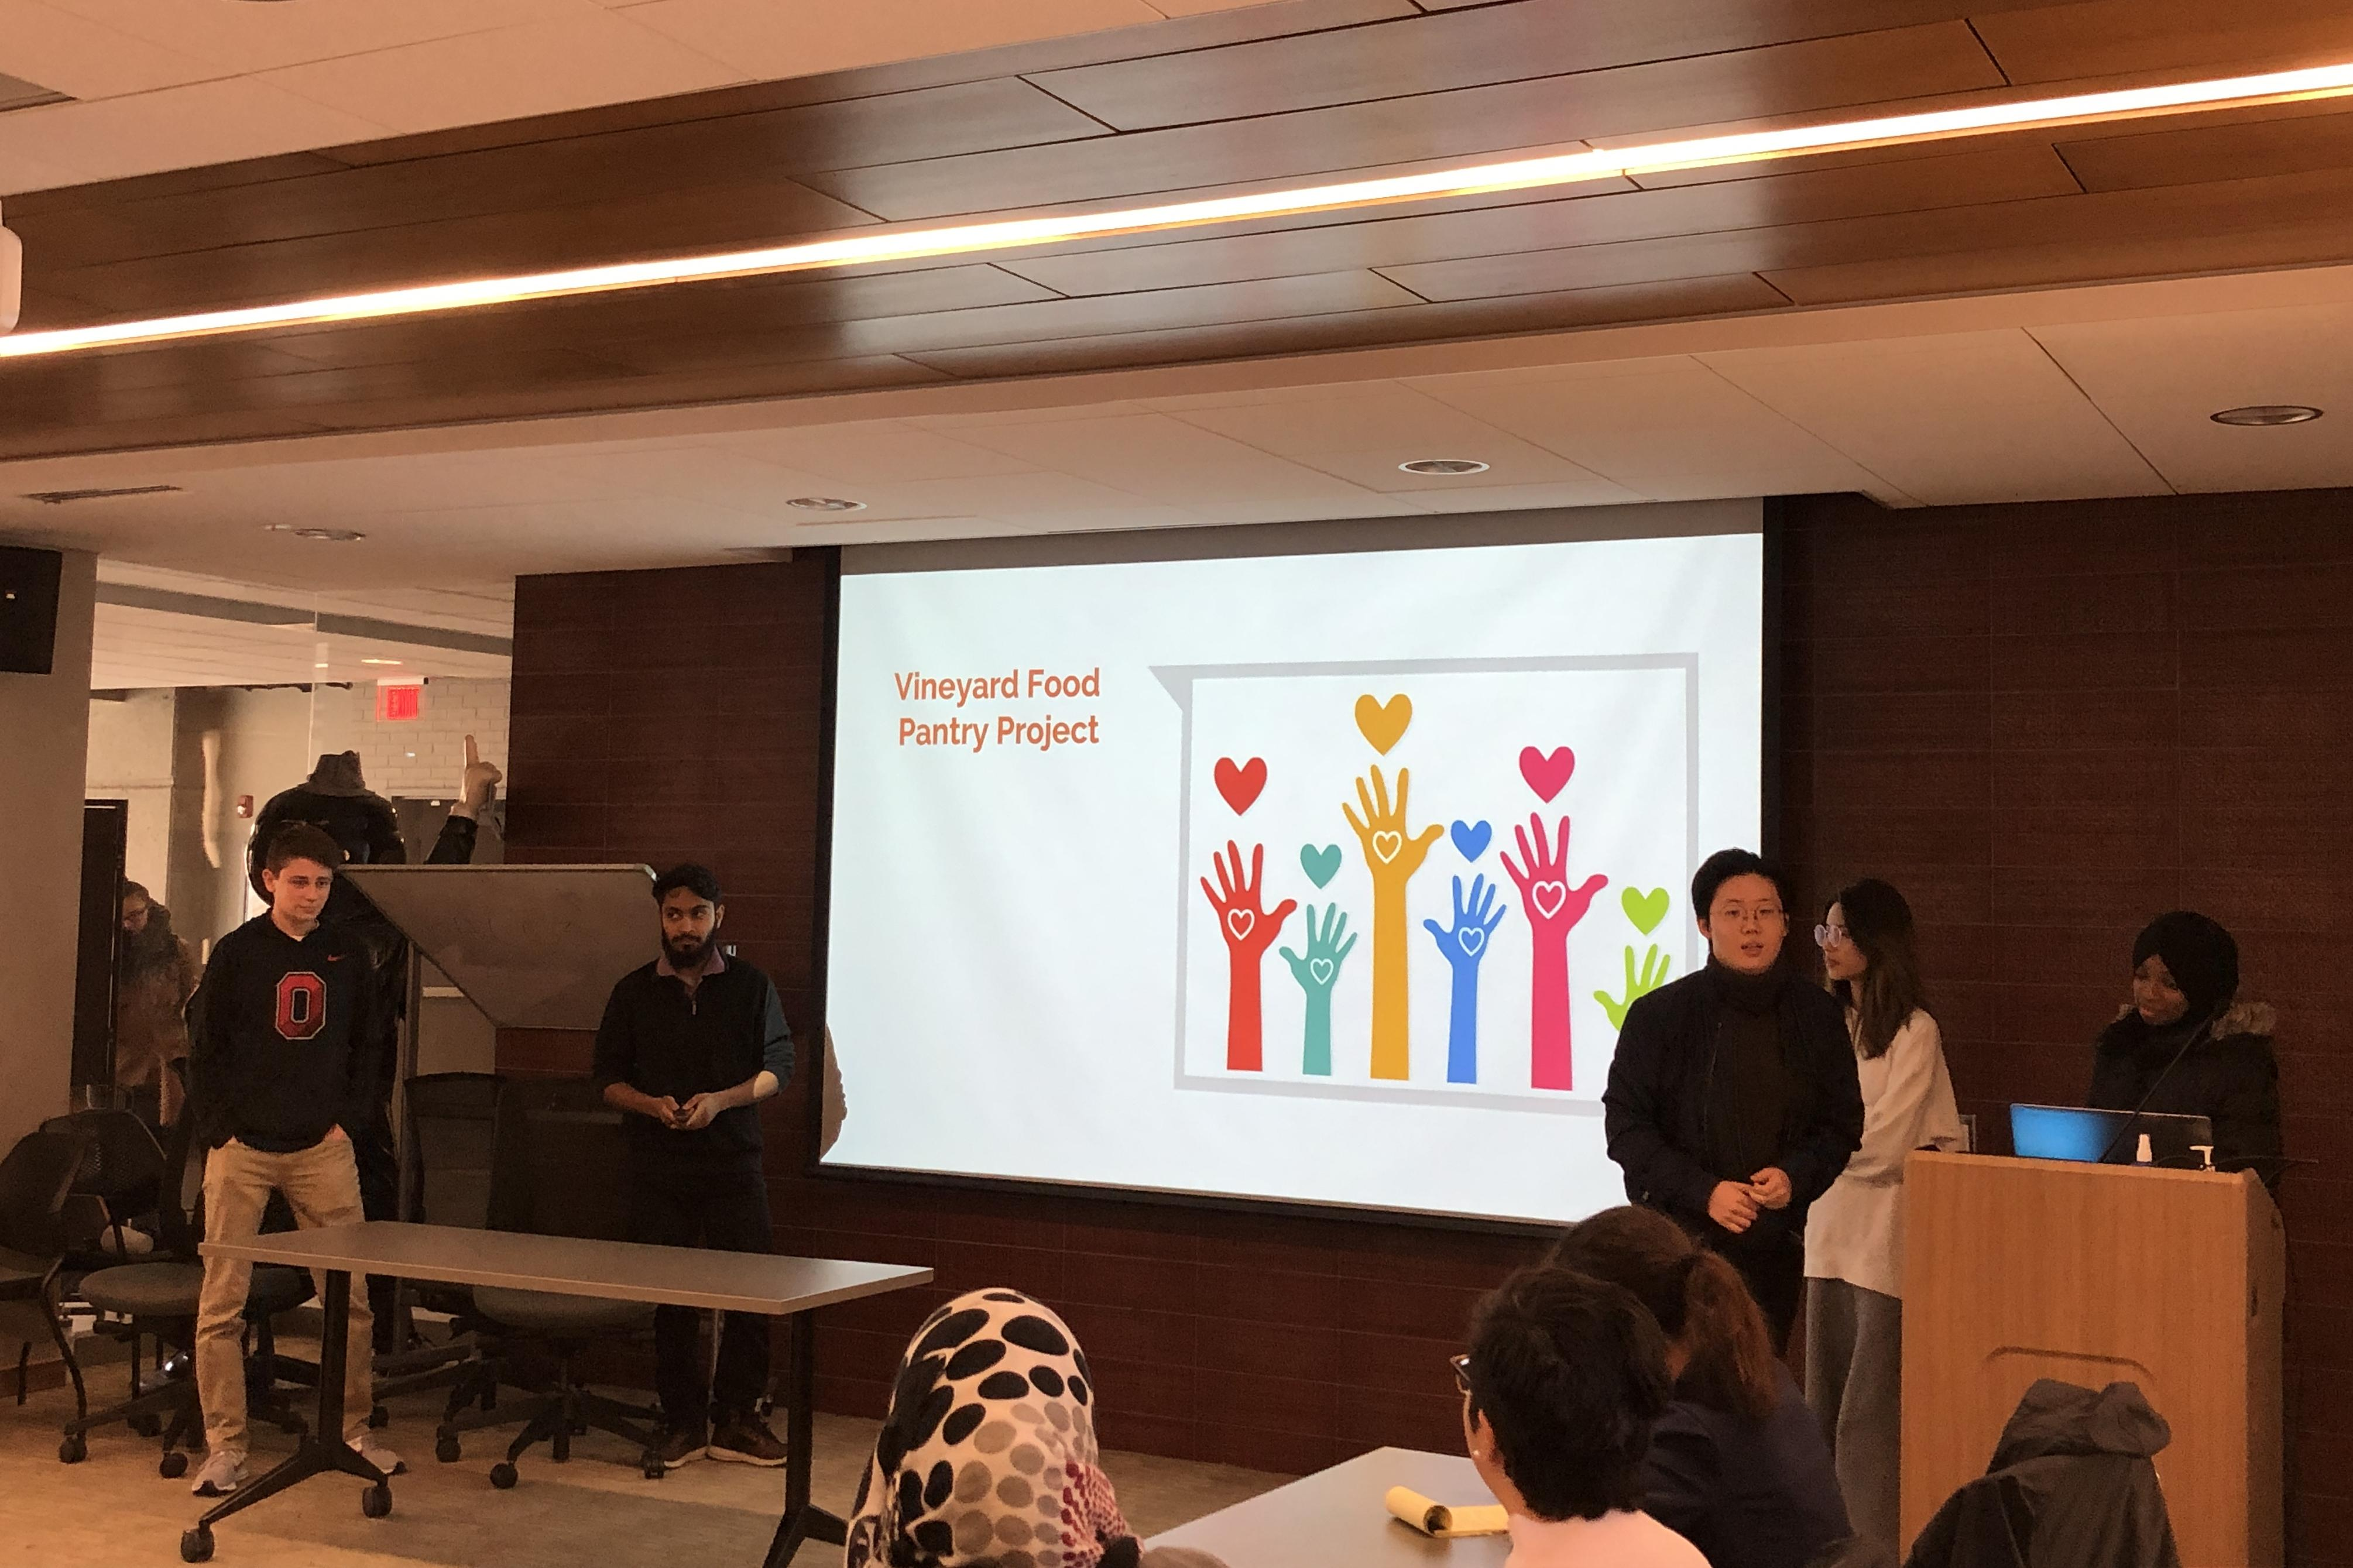 Communication students present about their service-learning project.